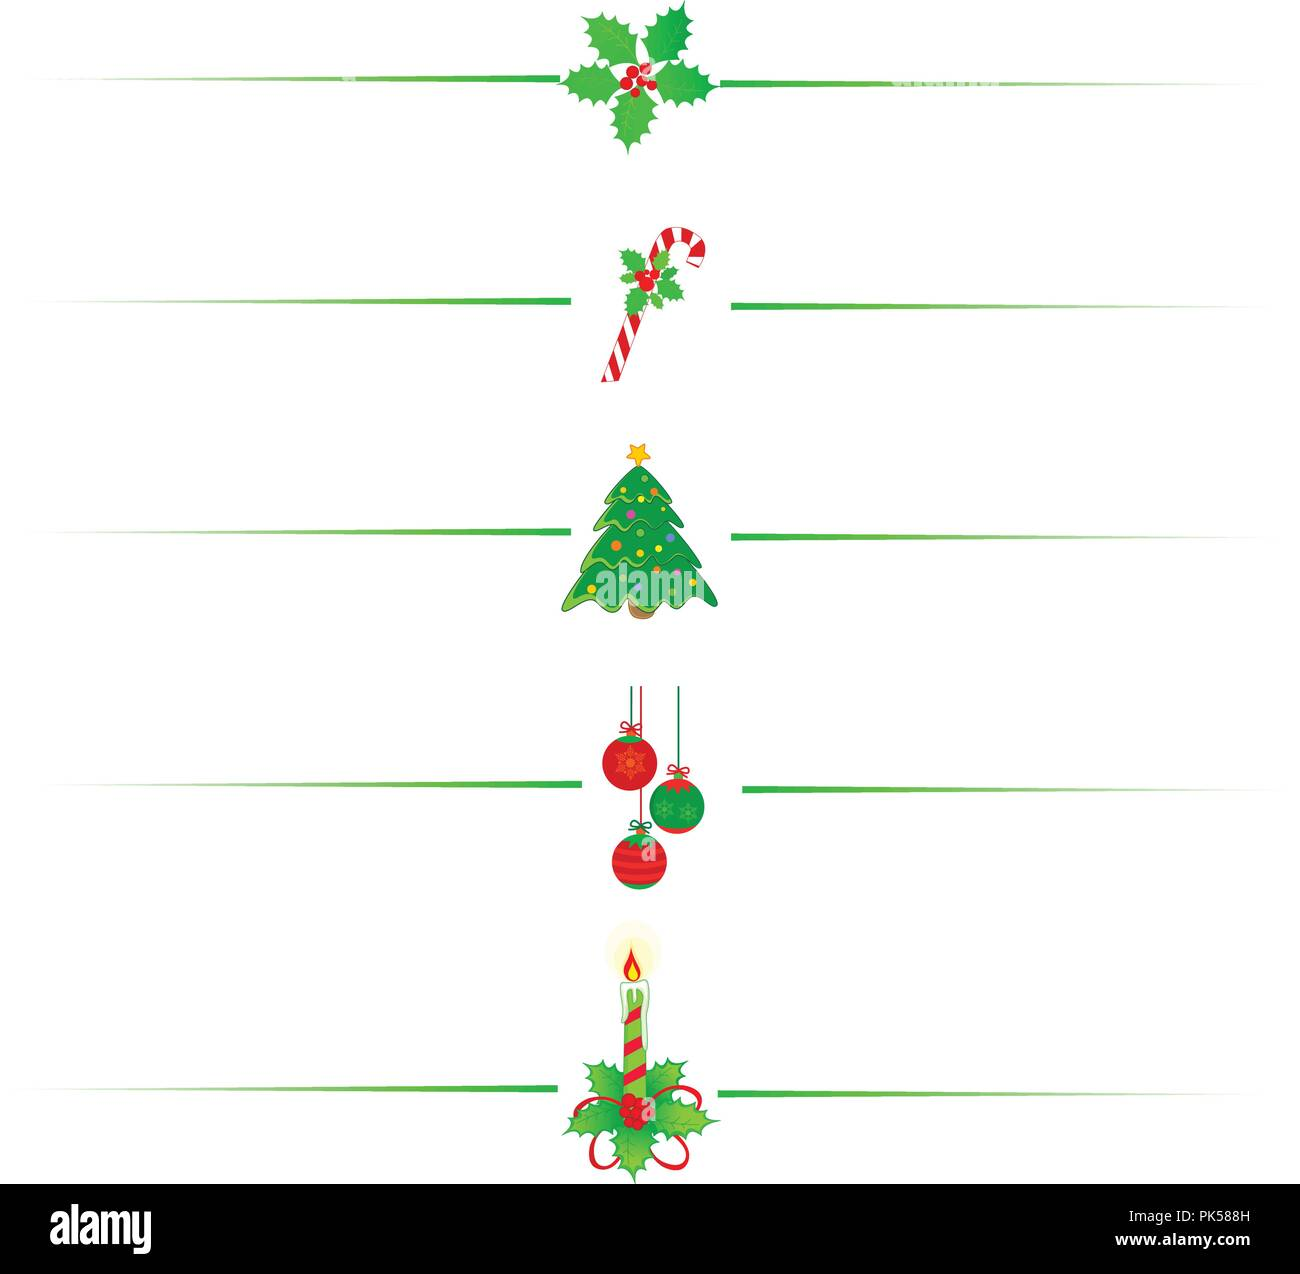 Clean Holly Leaves And Berries, Candy Cane Christmas Tree